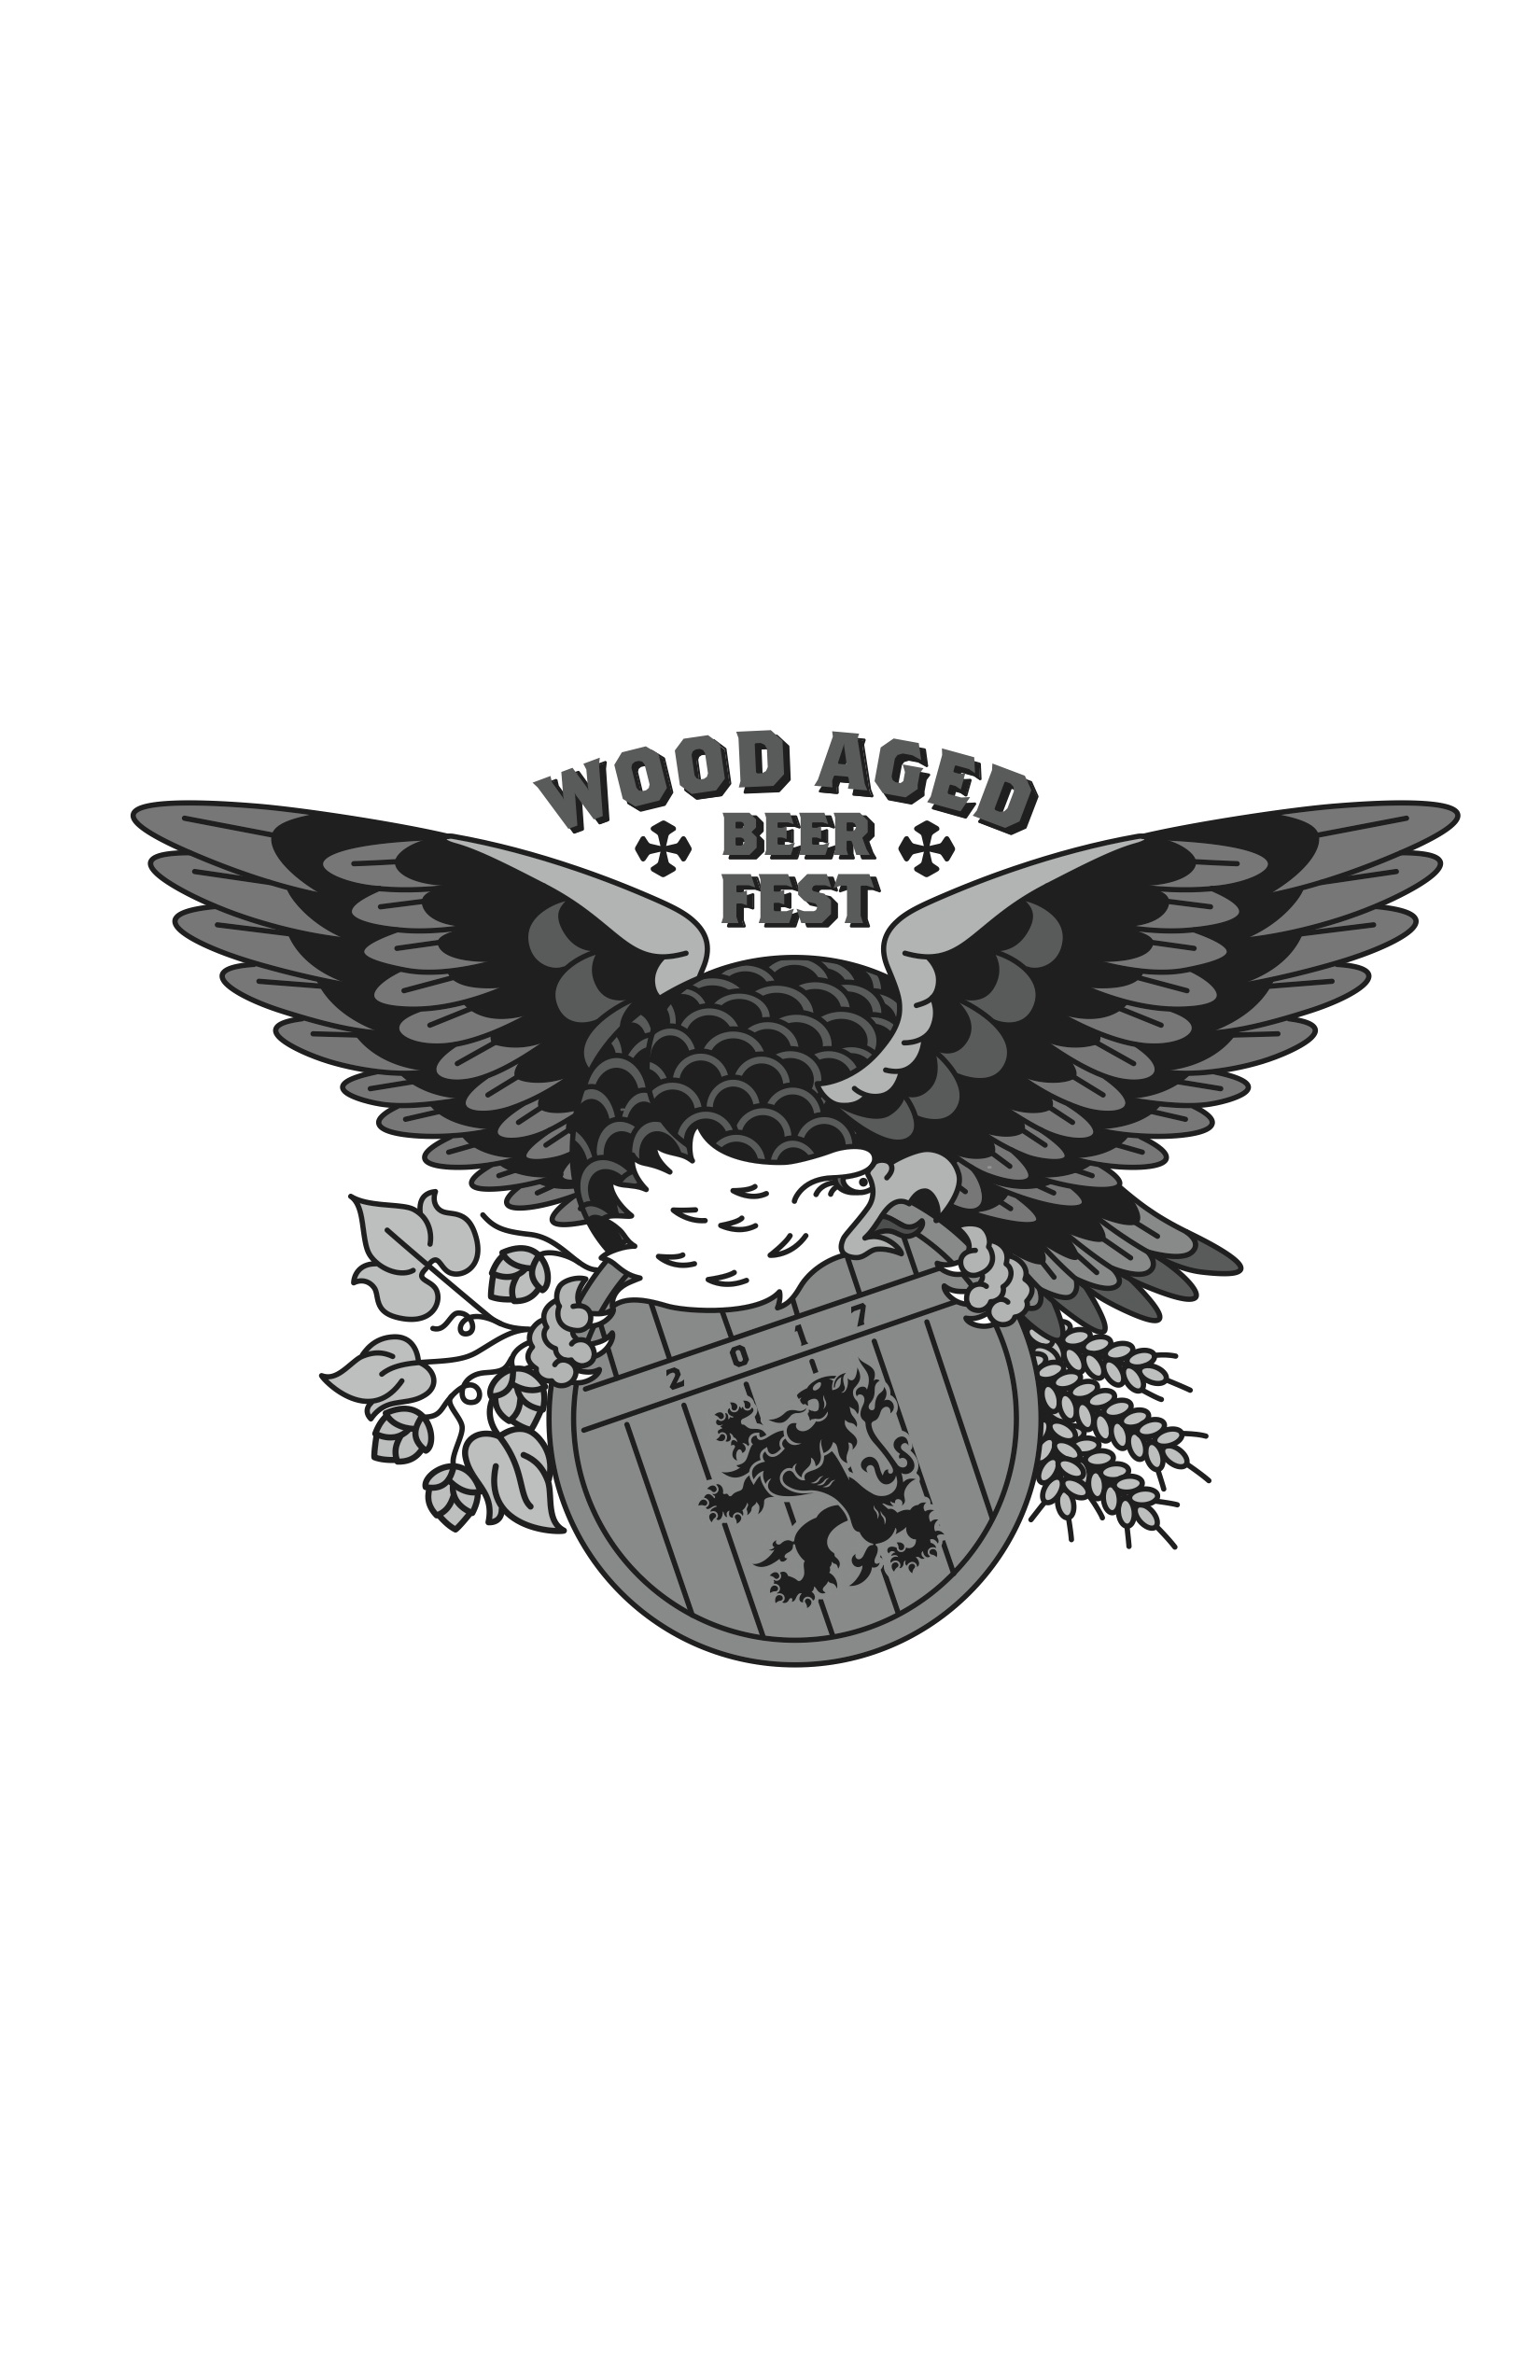 Thursday, December 7th-Sunday December 10th, 10th Annual Bigwood Festival